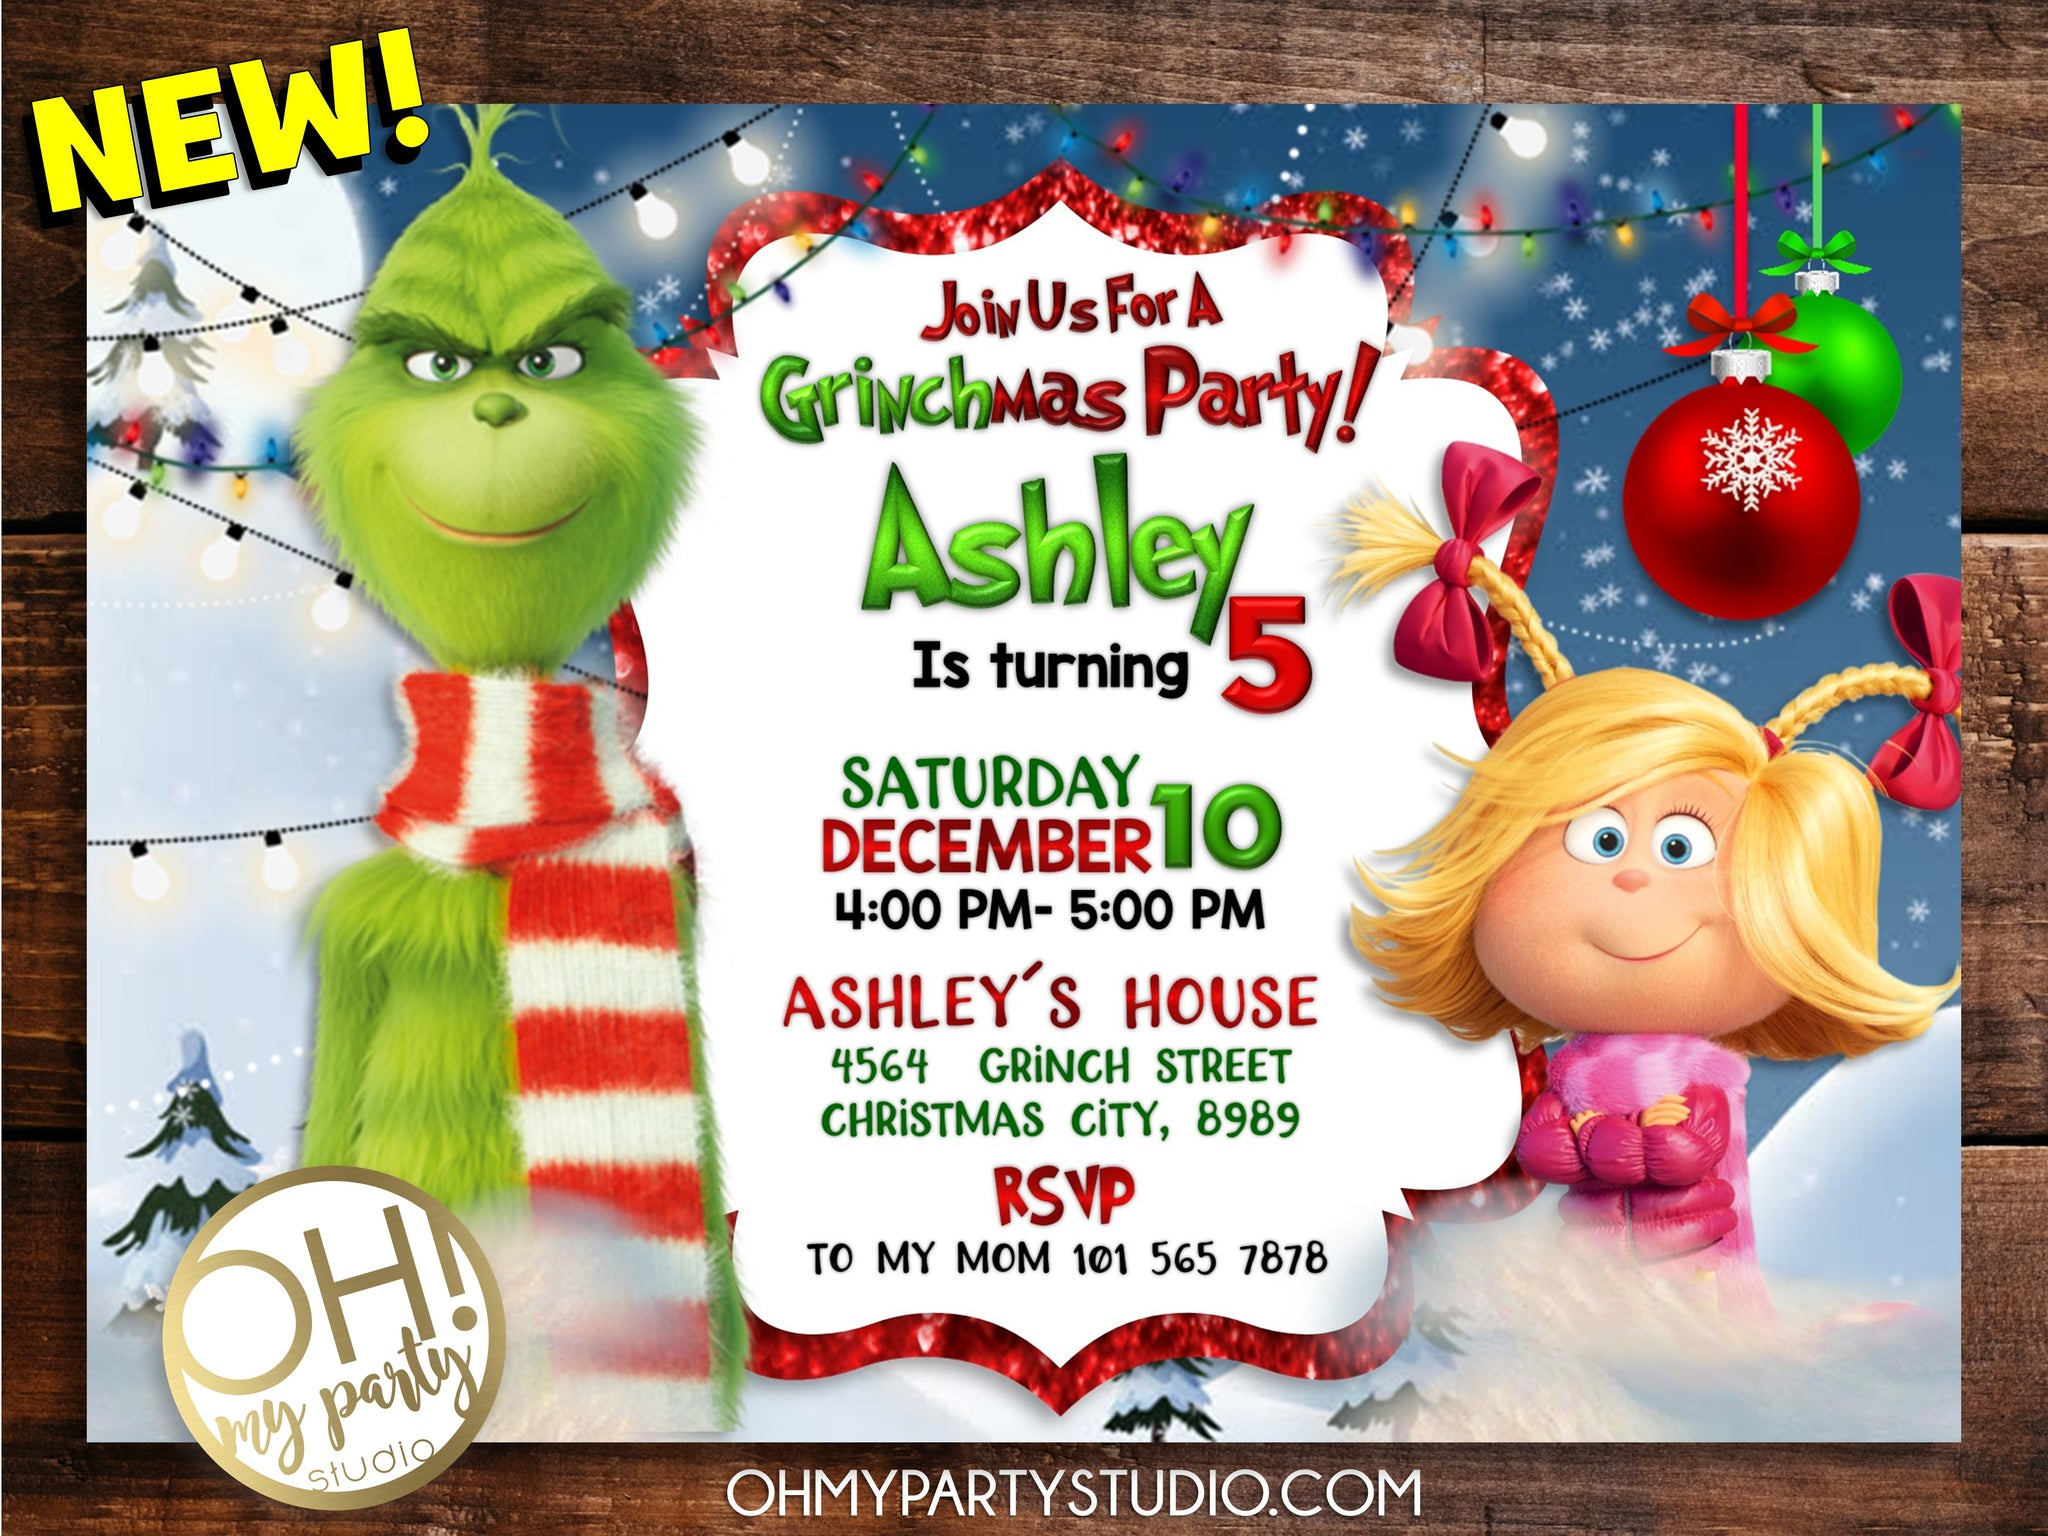 GRINCH BIRTHDAY PARTY, GRINCH INVITATION, GRINCH INVITATIONS, GRINCH PARTY PRINTABLES, GRINCH DECORATIONS, GRINCH INVITE, GRINCH CARD, GRINCH CHRISTMAS PARTY, GRINCH PARTY IDEAS, GRINCH INVITACIÓN, GRINCH FIESTA, GRINCH BIRTHDAY PARTY IDEAS , grinch birthday ideas, grinch party ideas, grinchmas birthday, grinchmas party, grinch party invitation, grinch birthday, grinch birthday invitations